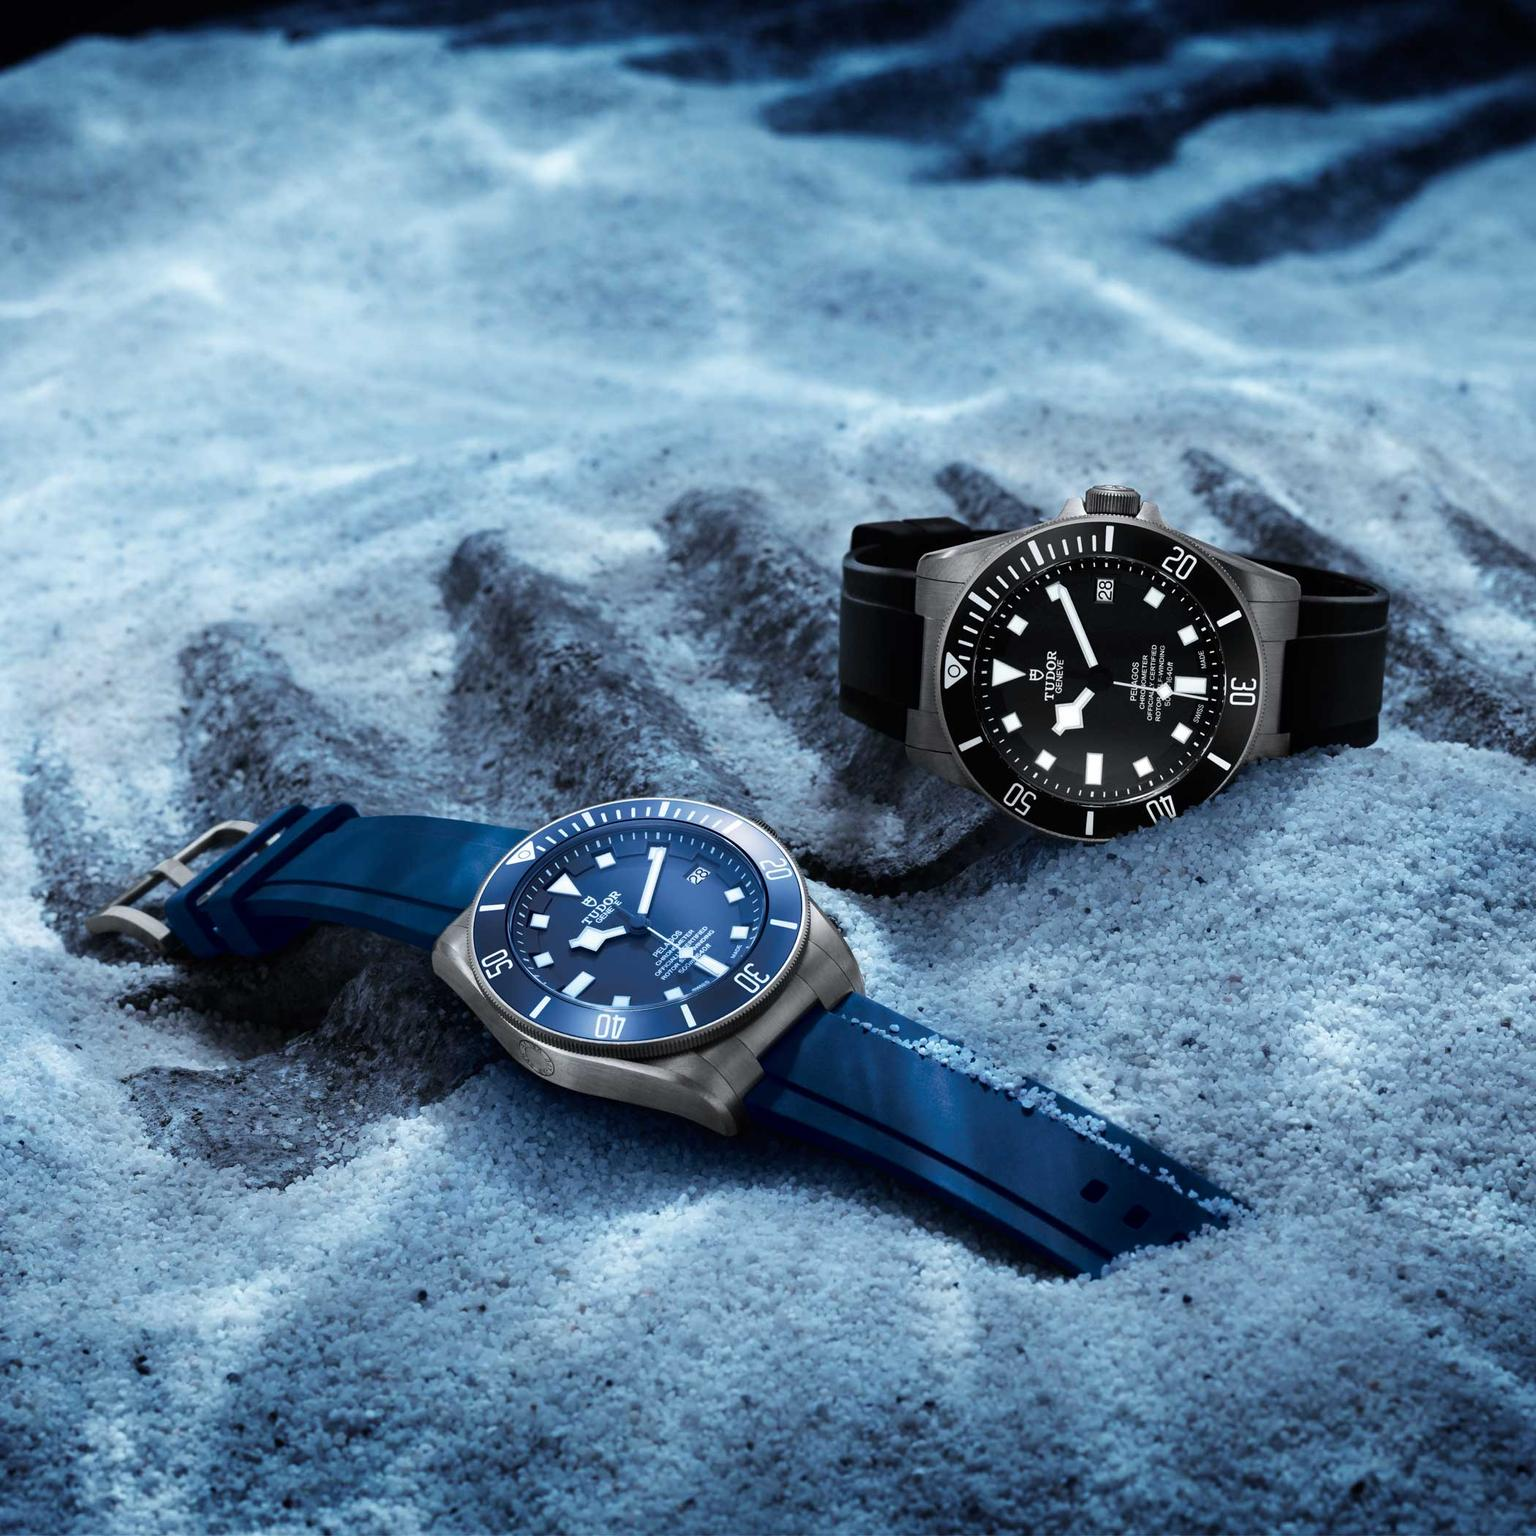 Tudor-Pelagos-watches